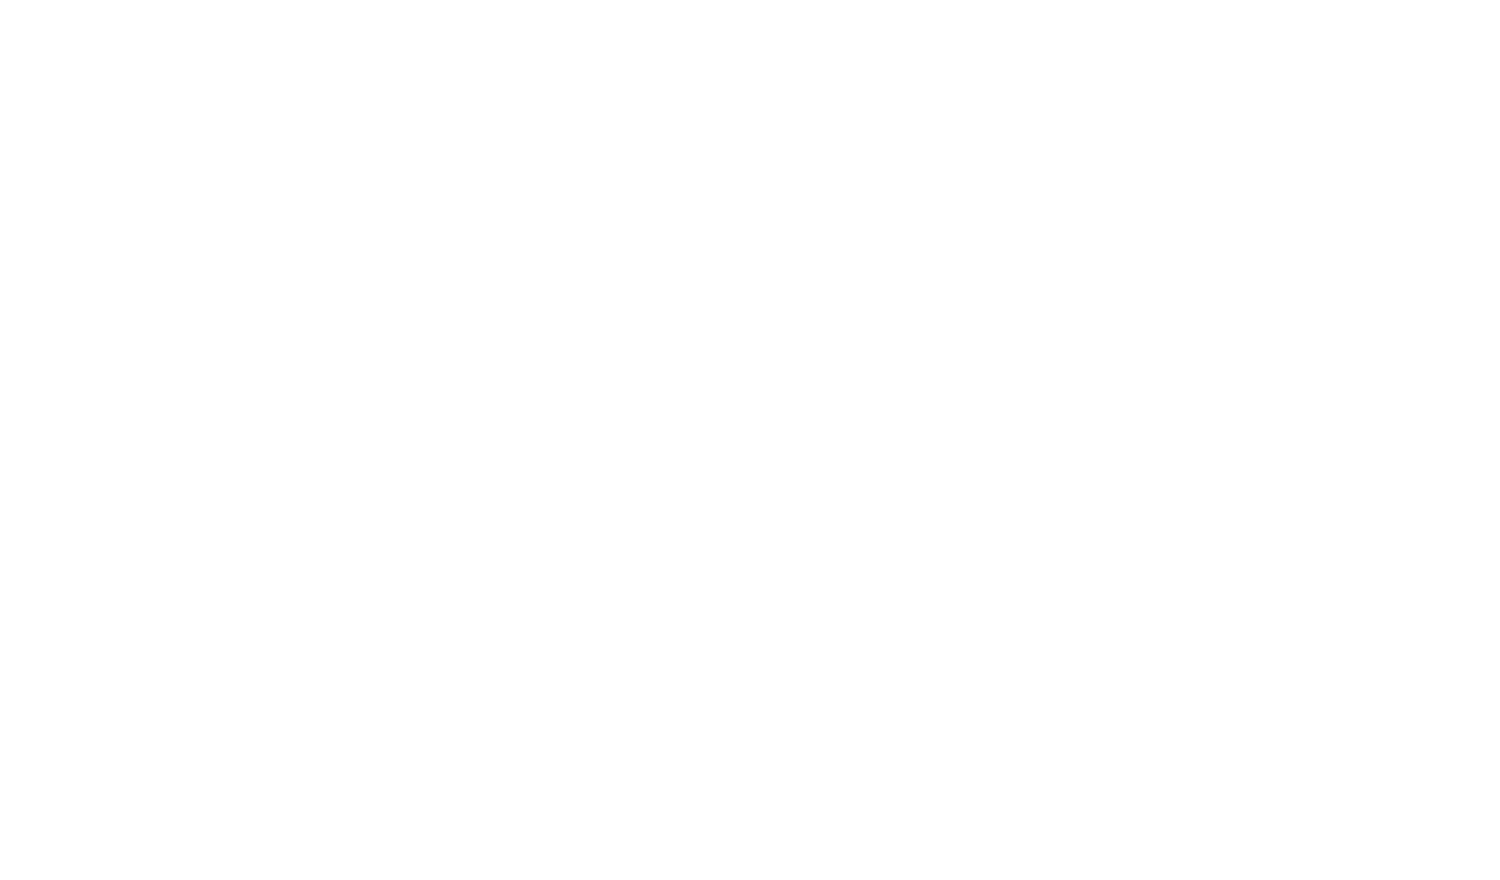 Wanderlove Creations by Bianca | Henna Body Art San Diego